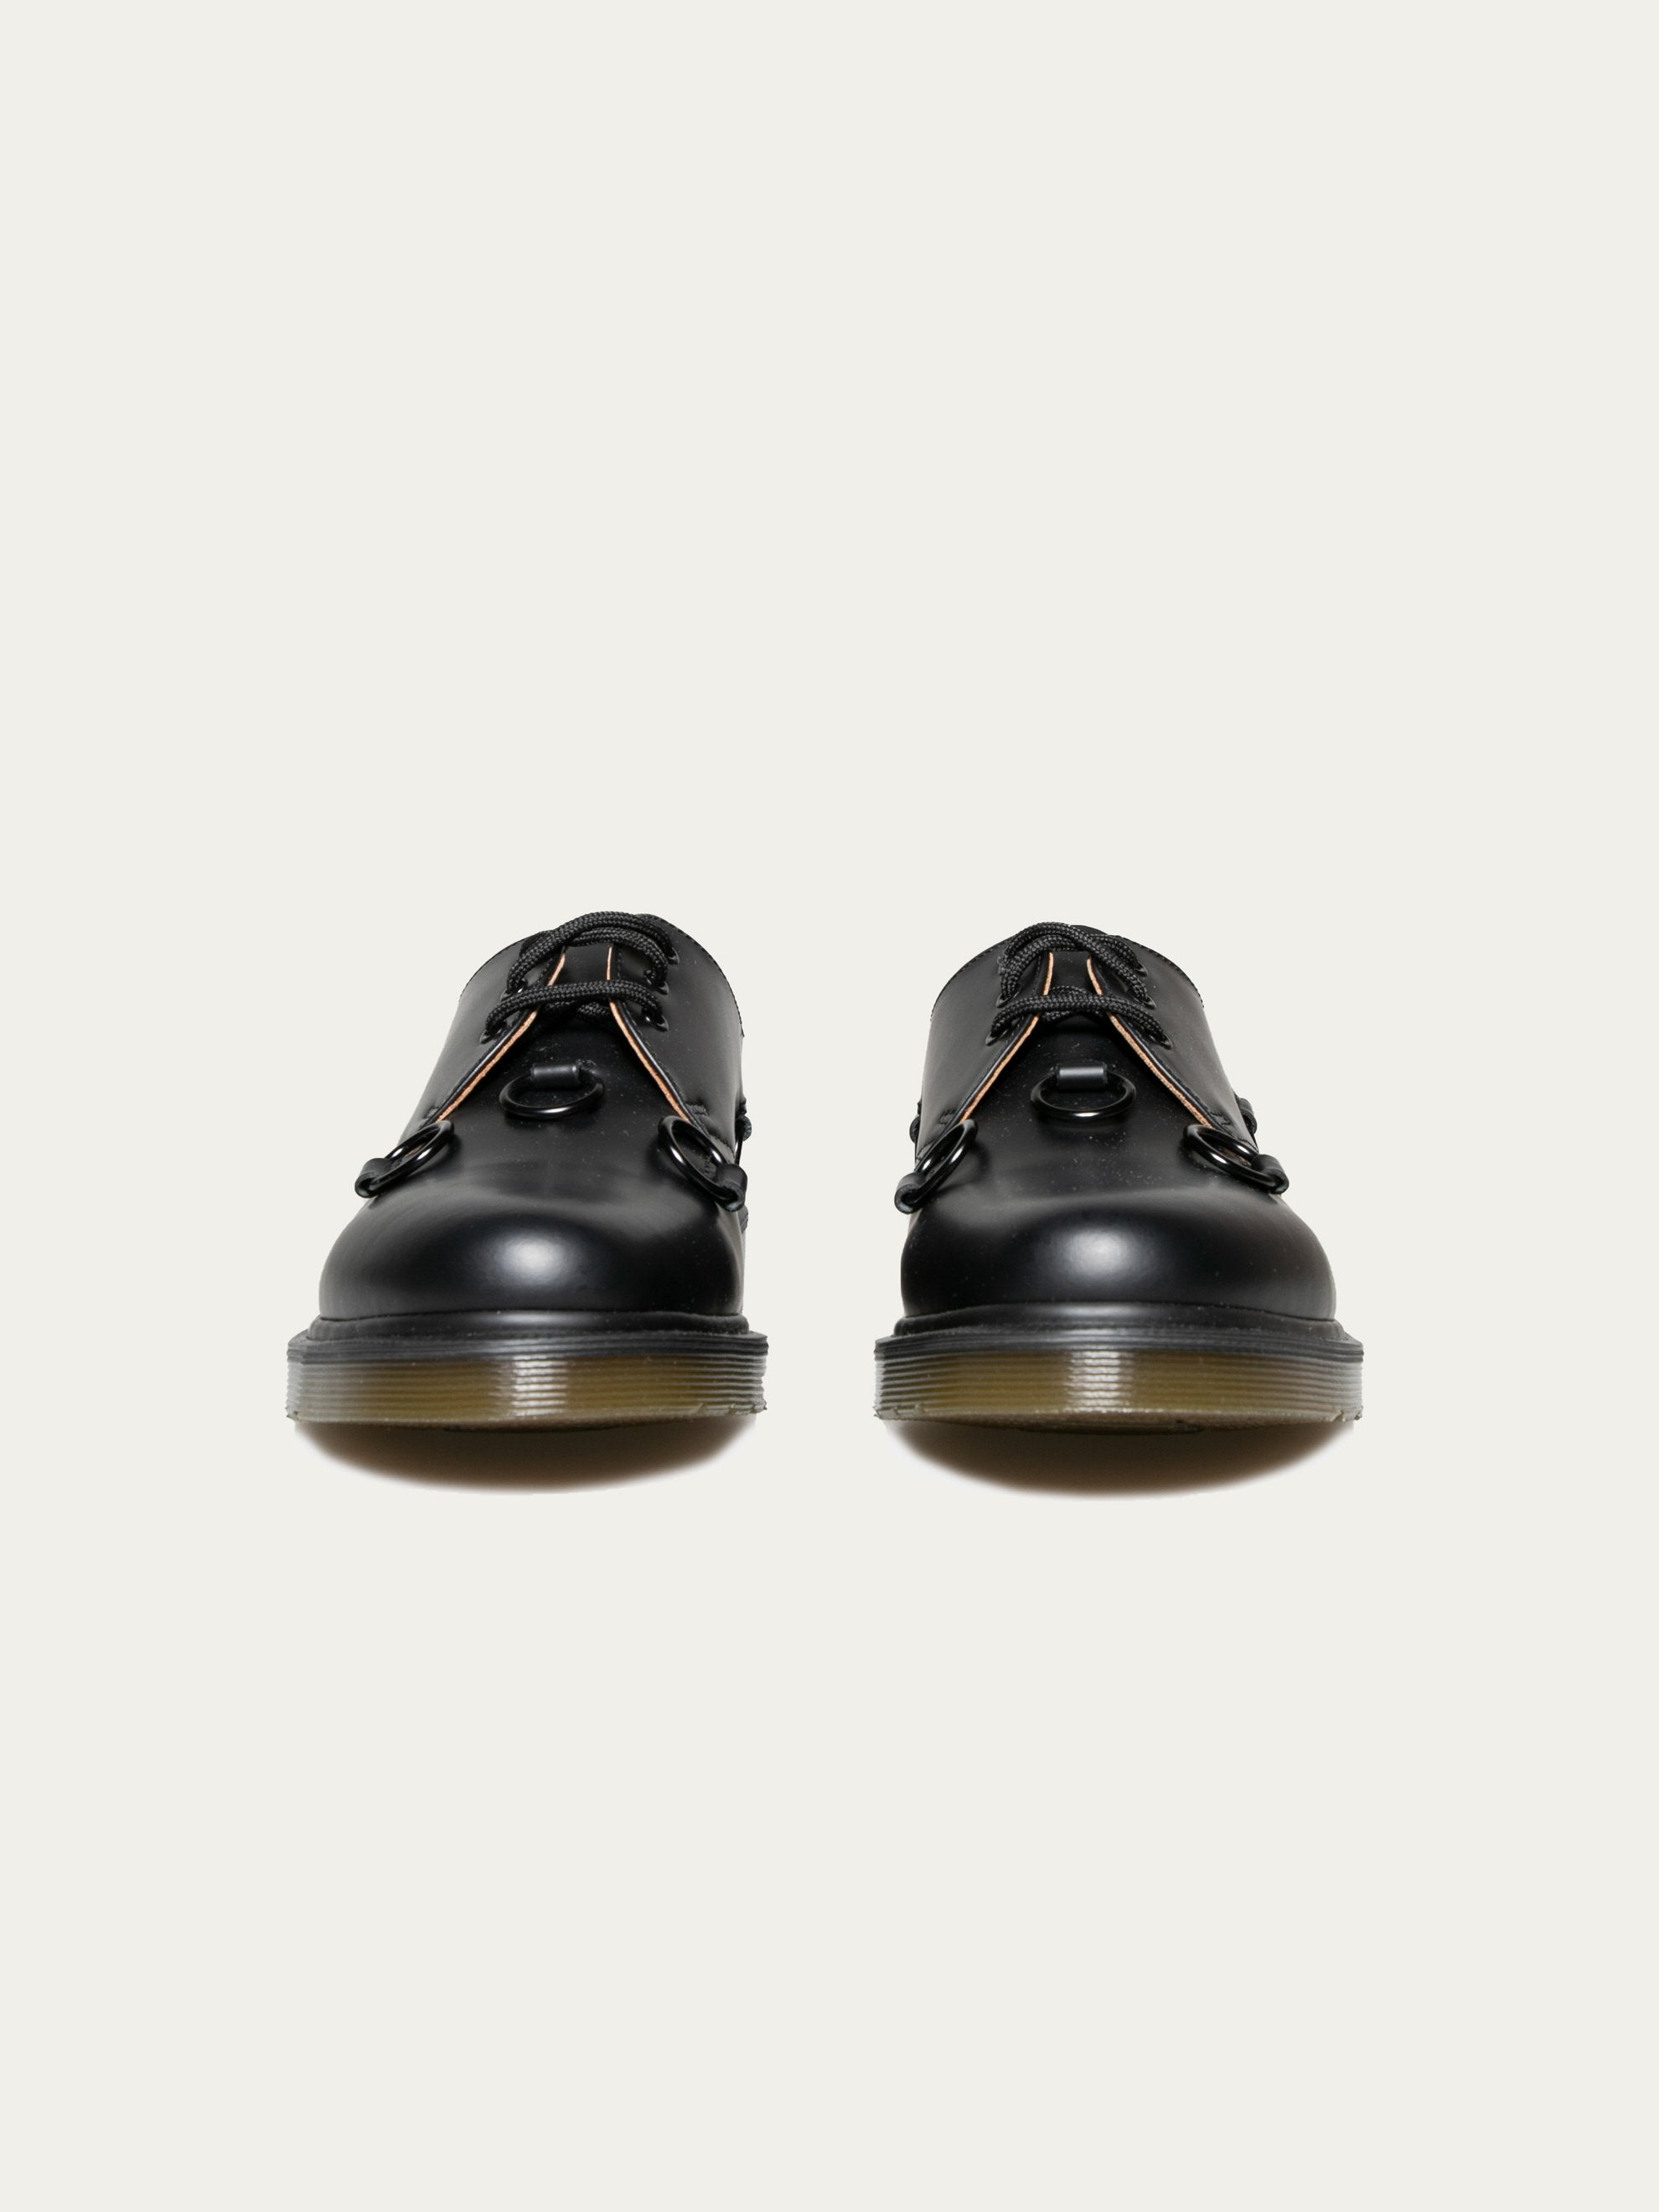 Black Raf Simons x Dr. Martens Low Shoe With Nickel Rings 3